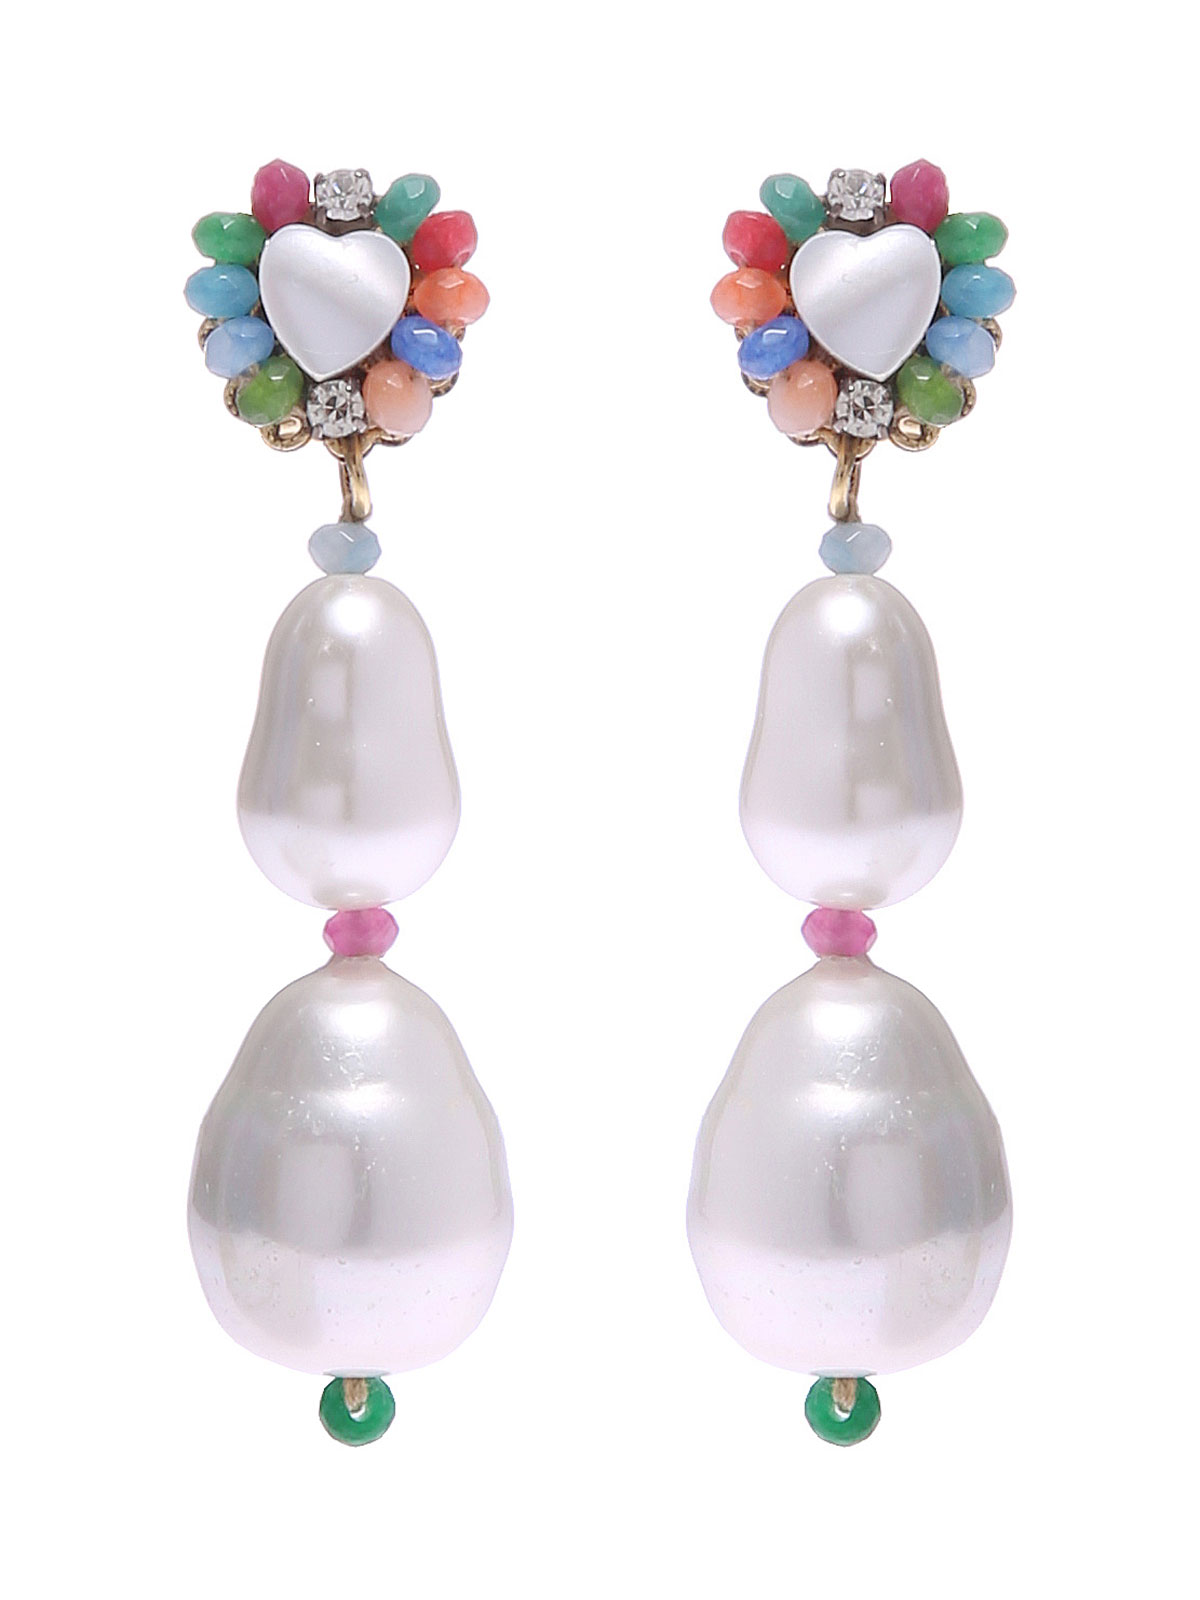 Jade earrings and motherofpearl heart stone